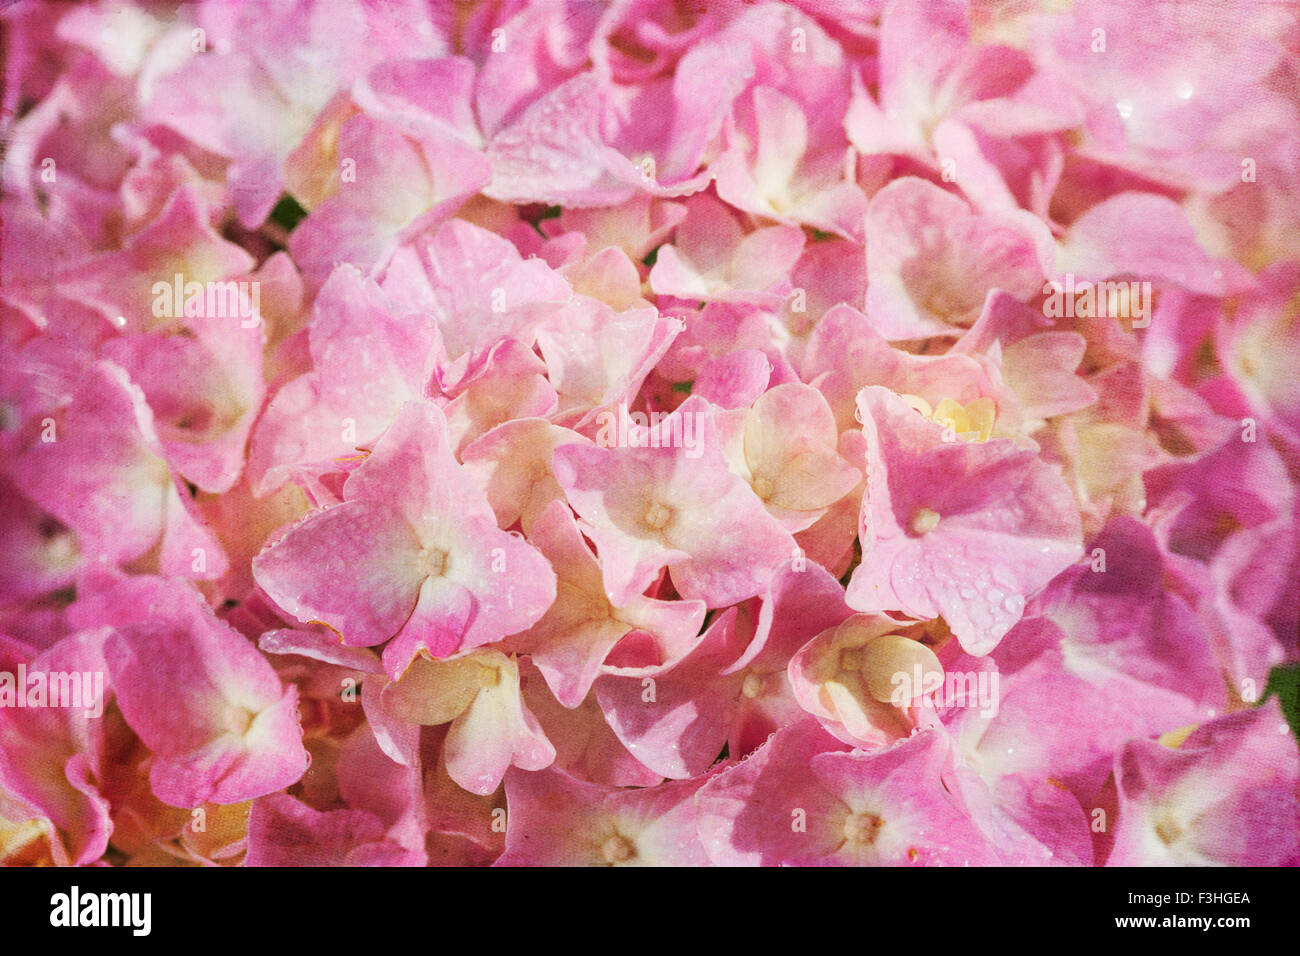 Close up of a pink hydrangea flower with a vintage textured effect. - Stock Image